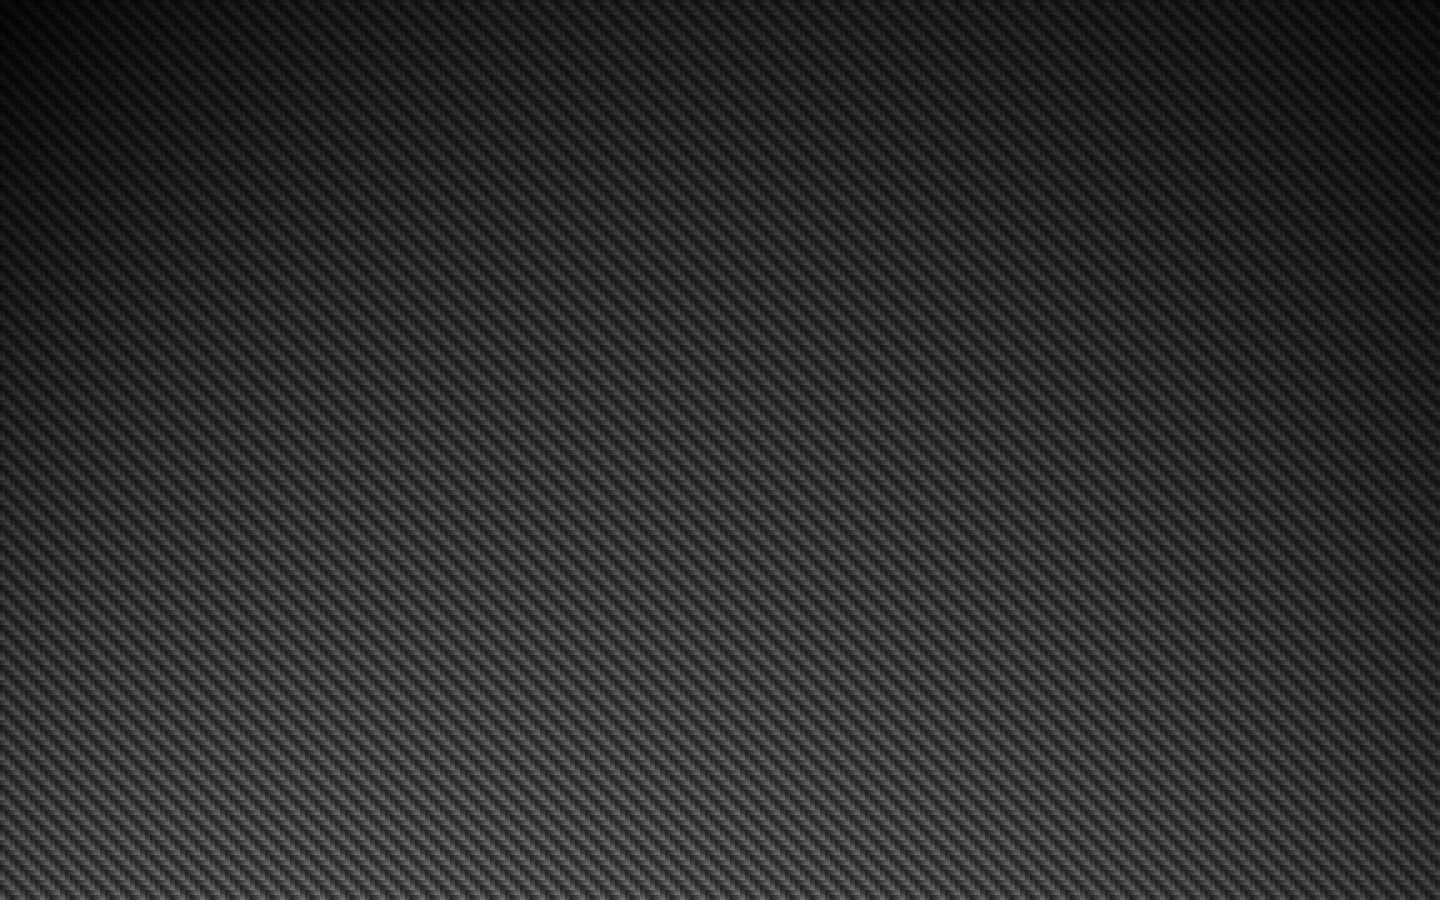 carbon fibre wallpapers - wallpaper cave